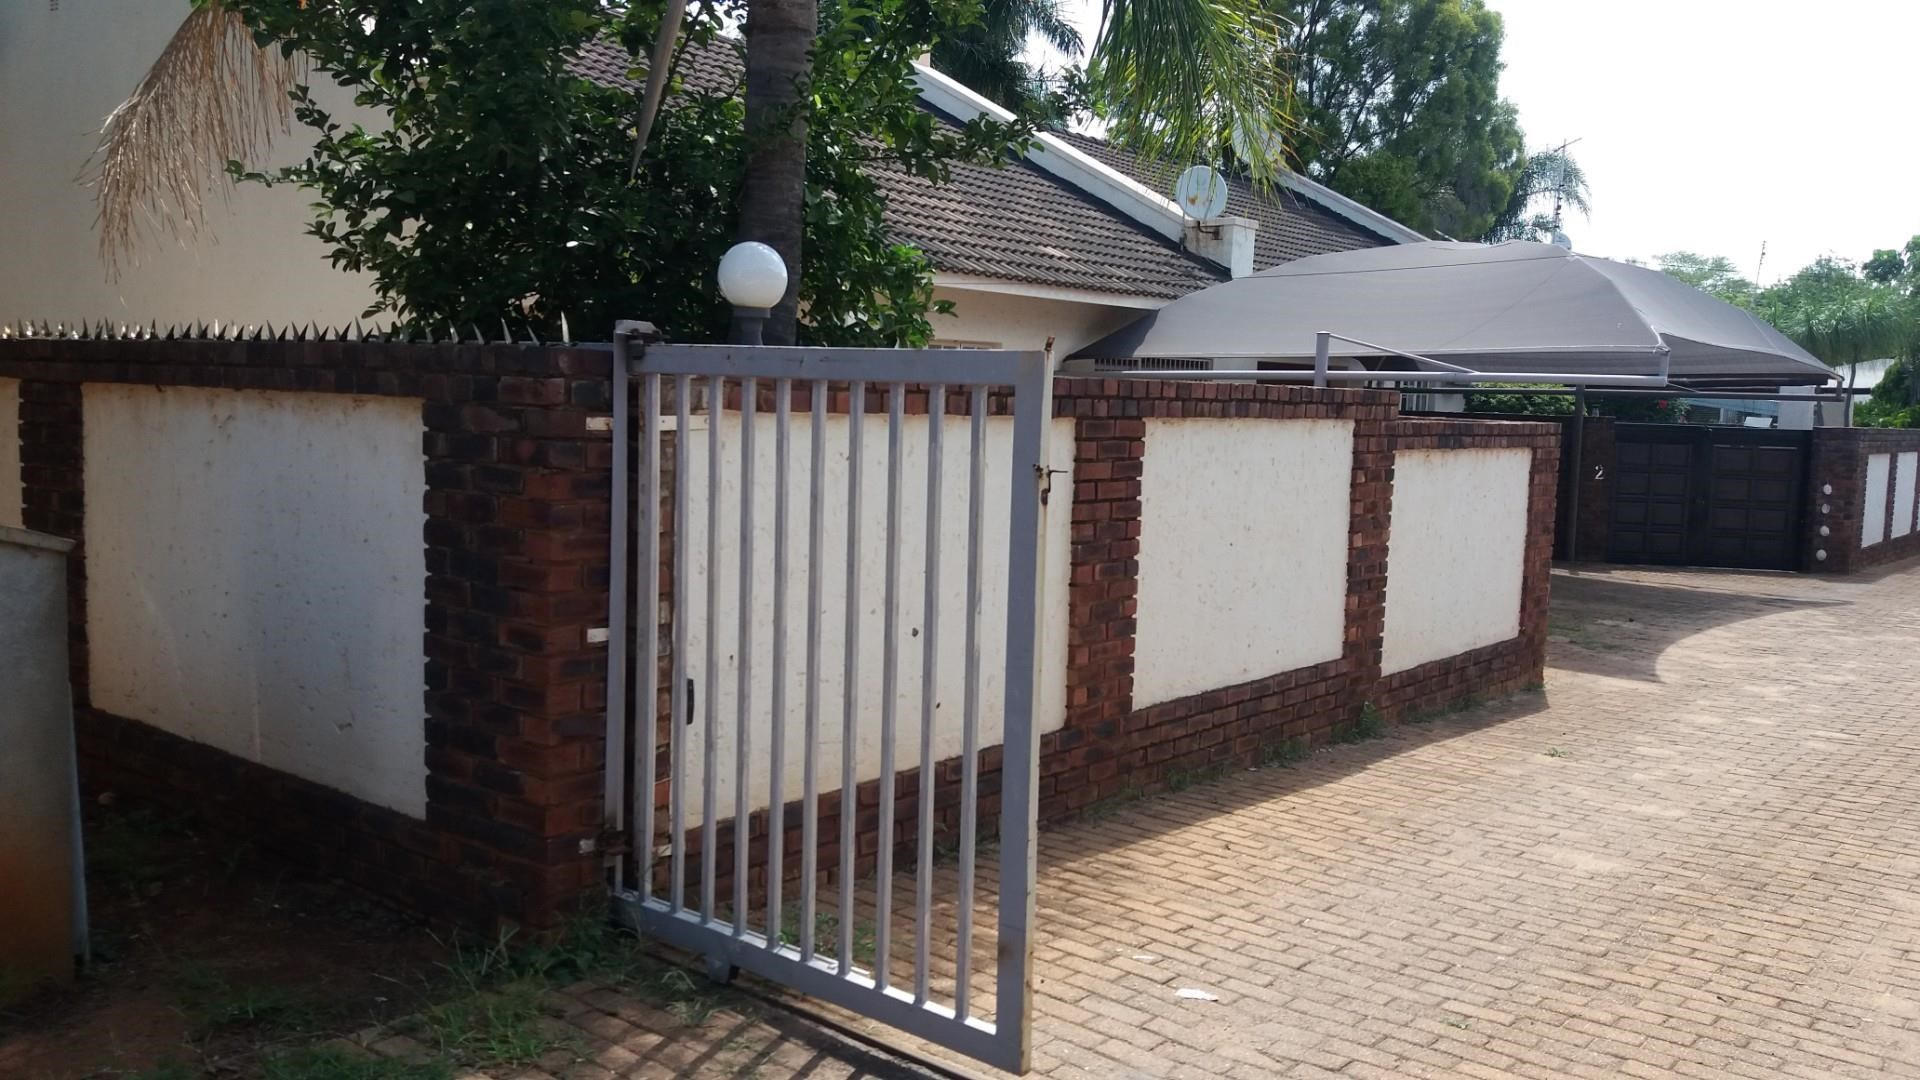 2 Bedroom Townhouse to Rent in Chroompark